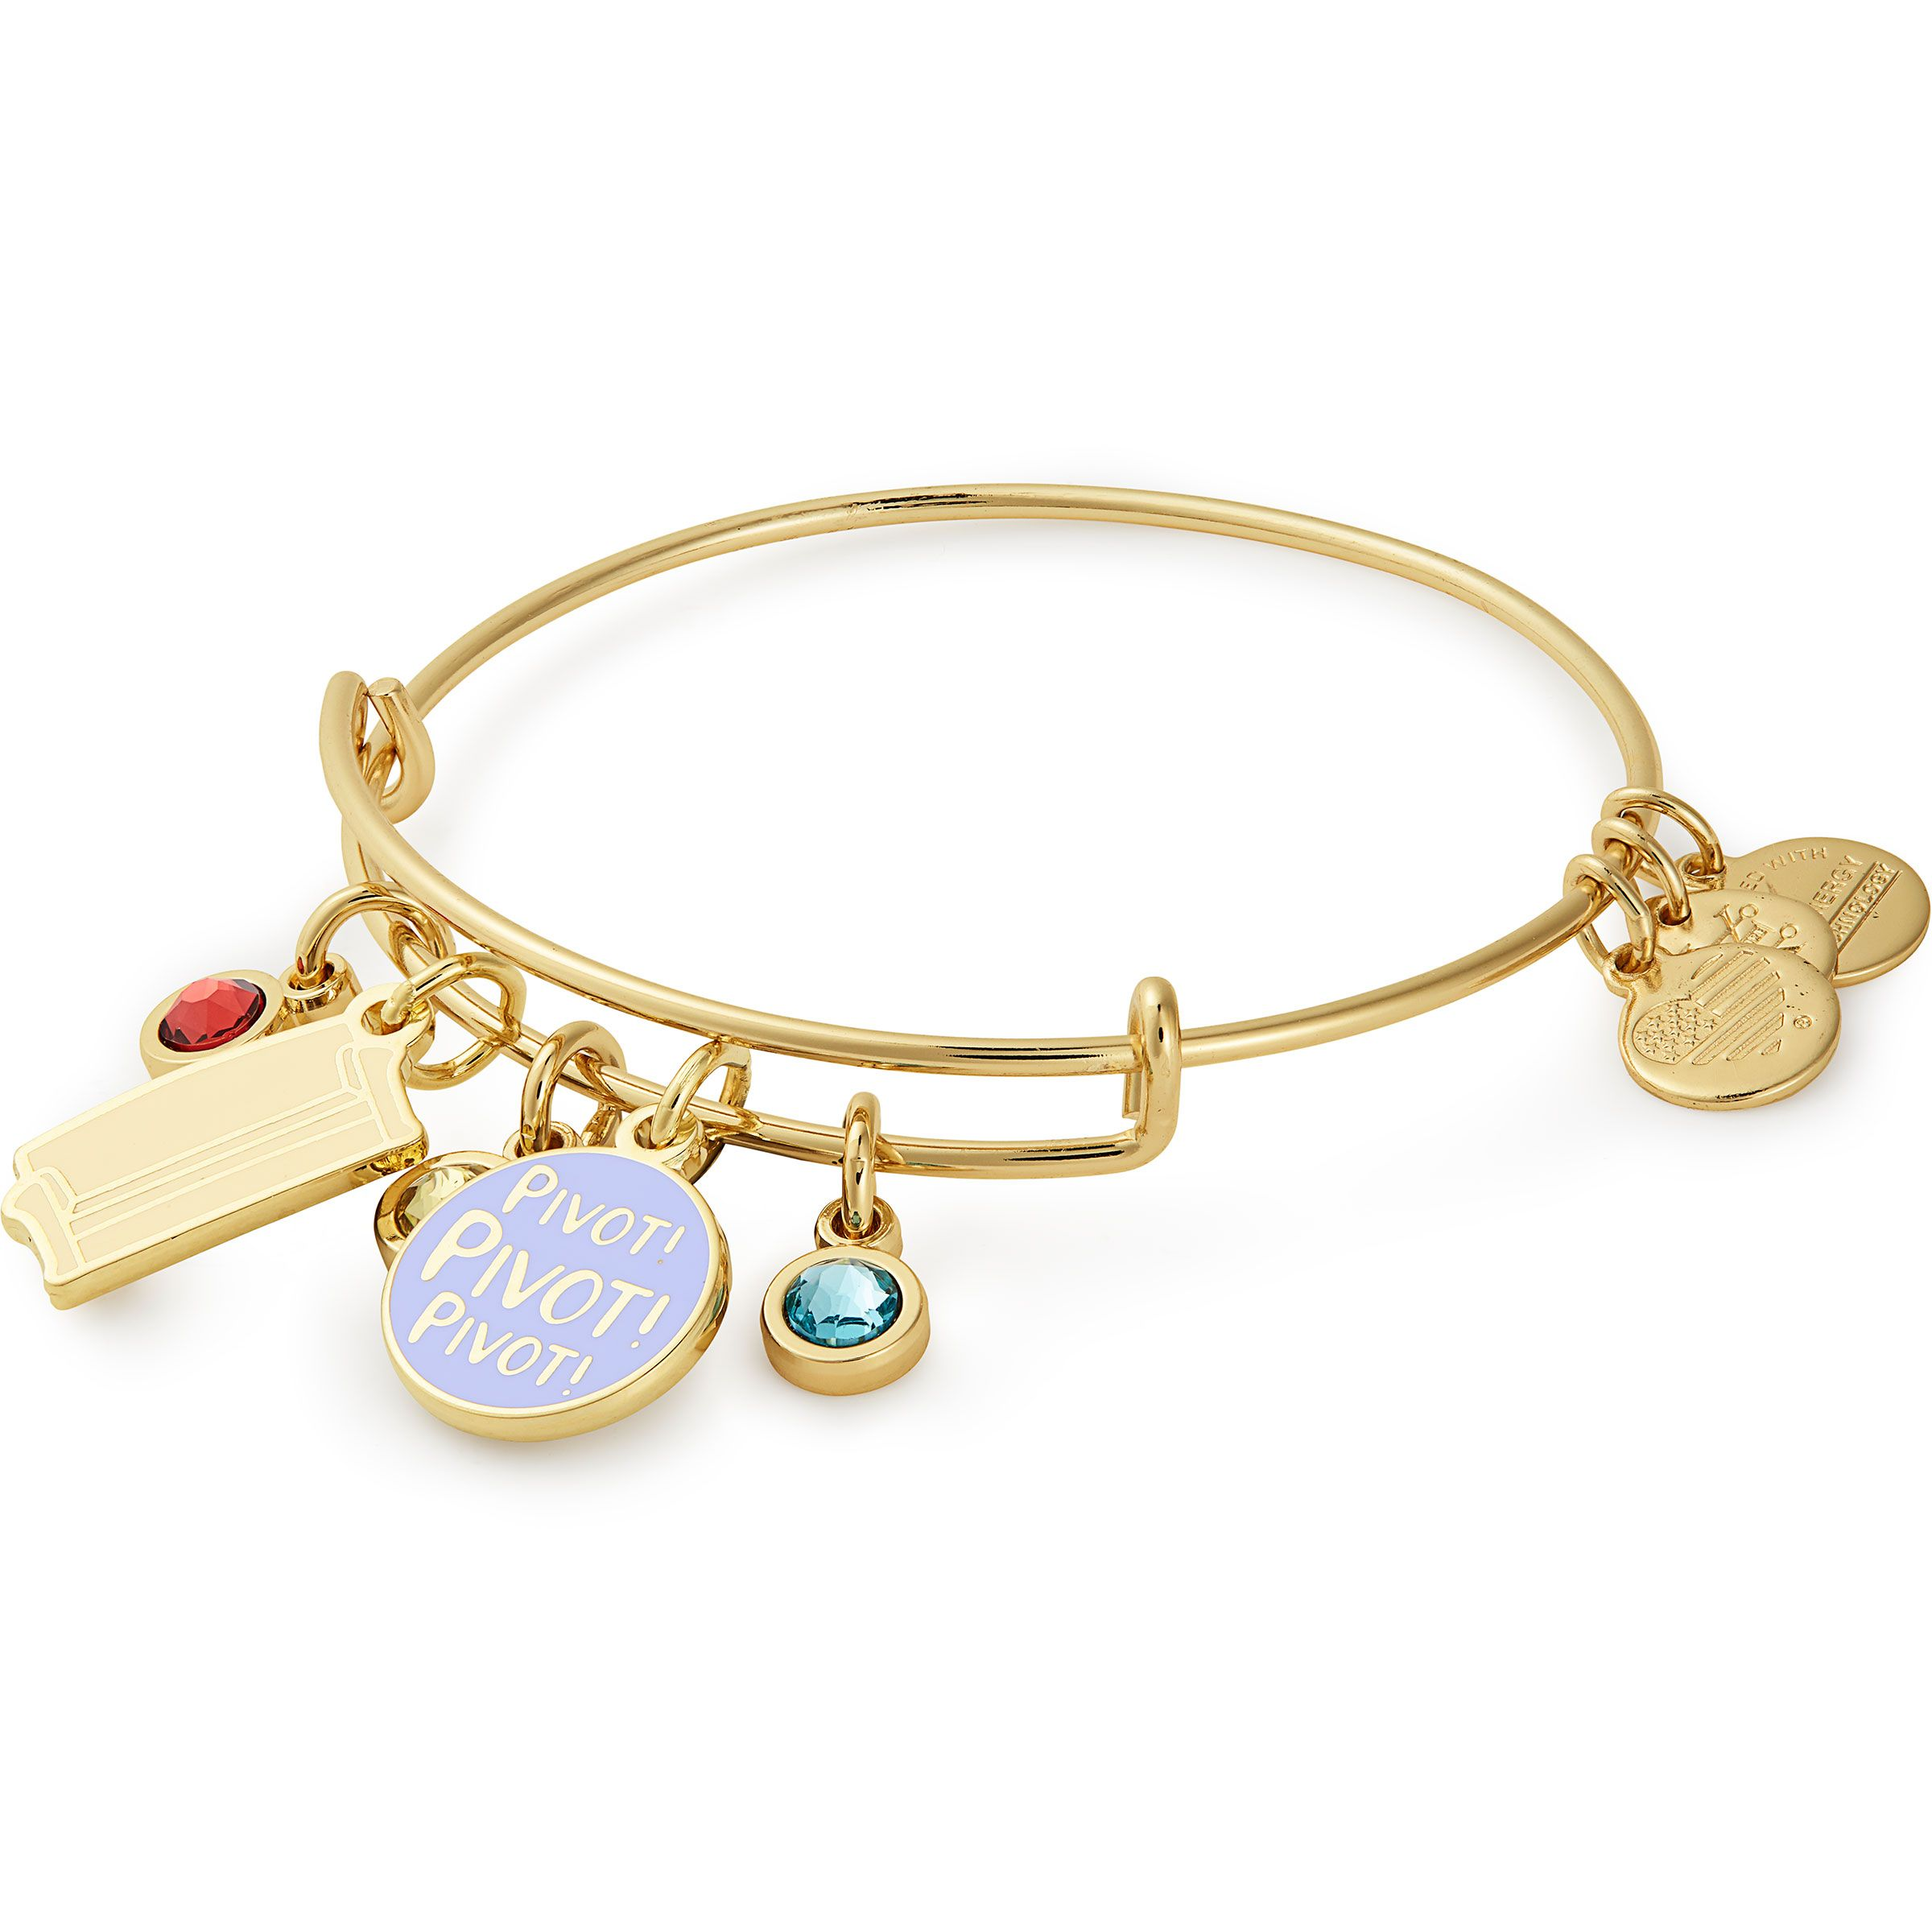 Alex And Ani Released A Friends Collection In August 2019